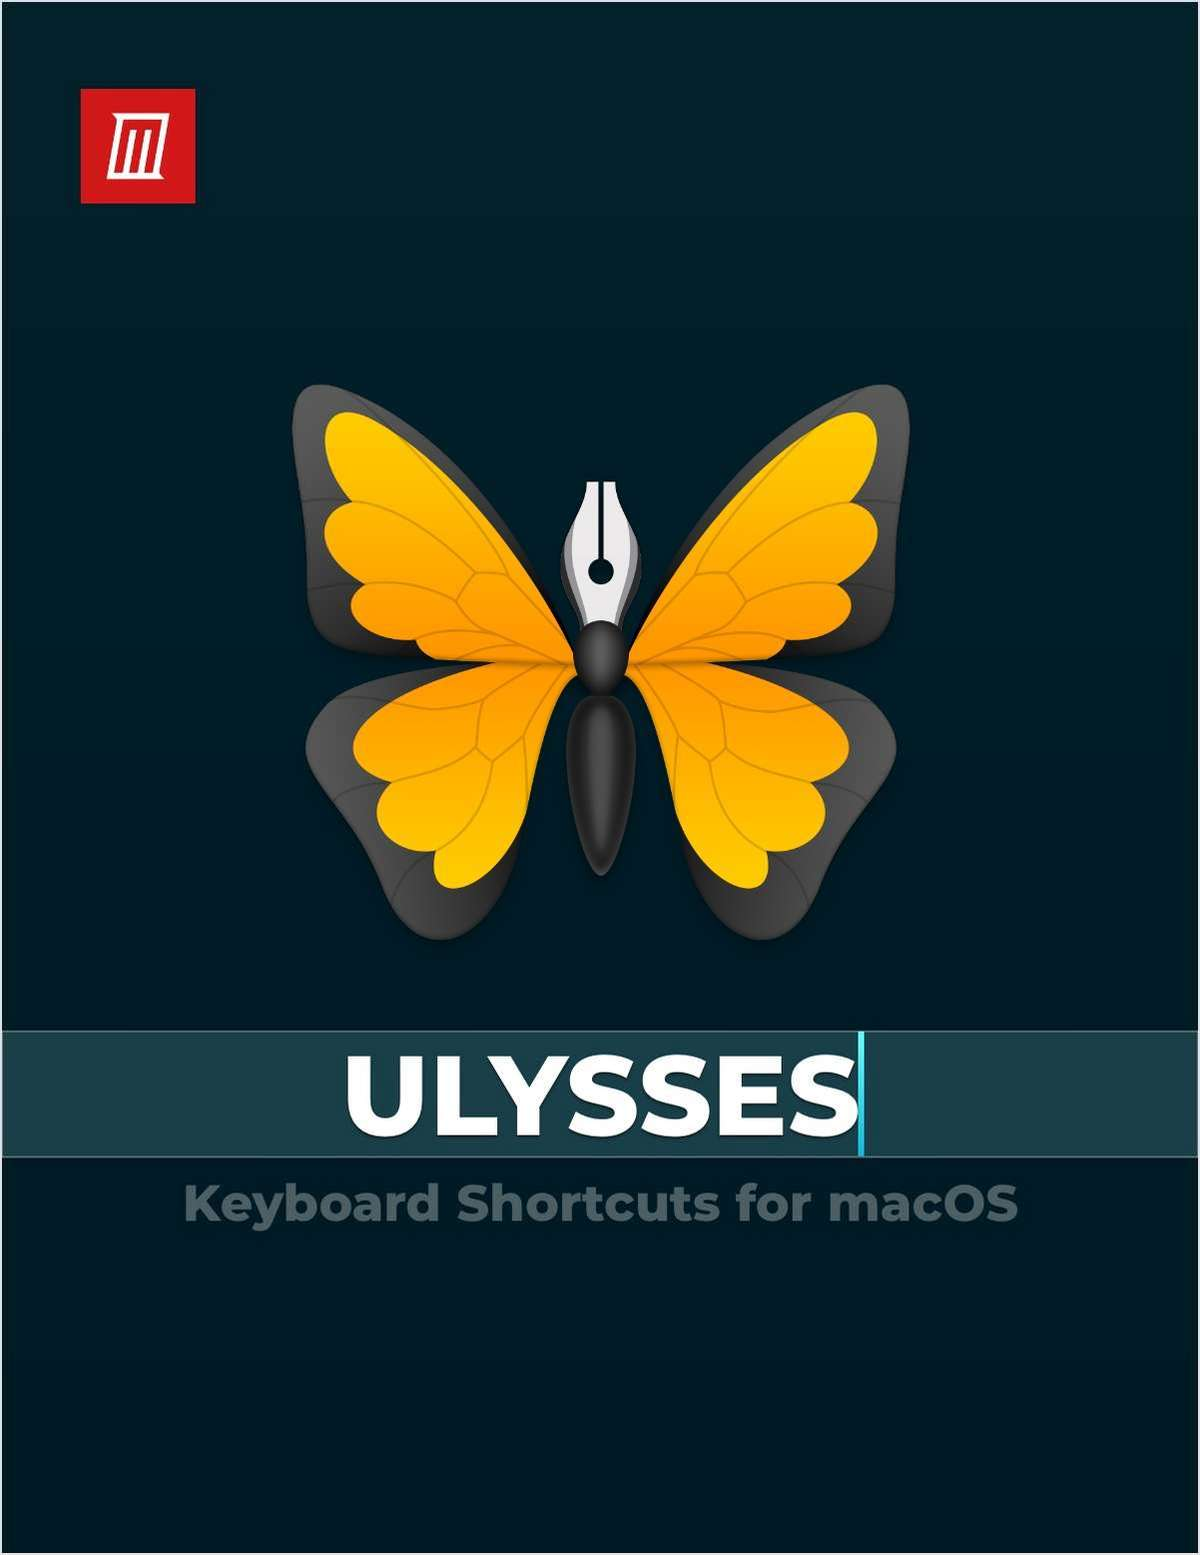 Ulysses Keyboard Shortcuts for macOS